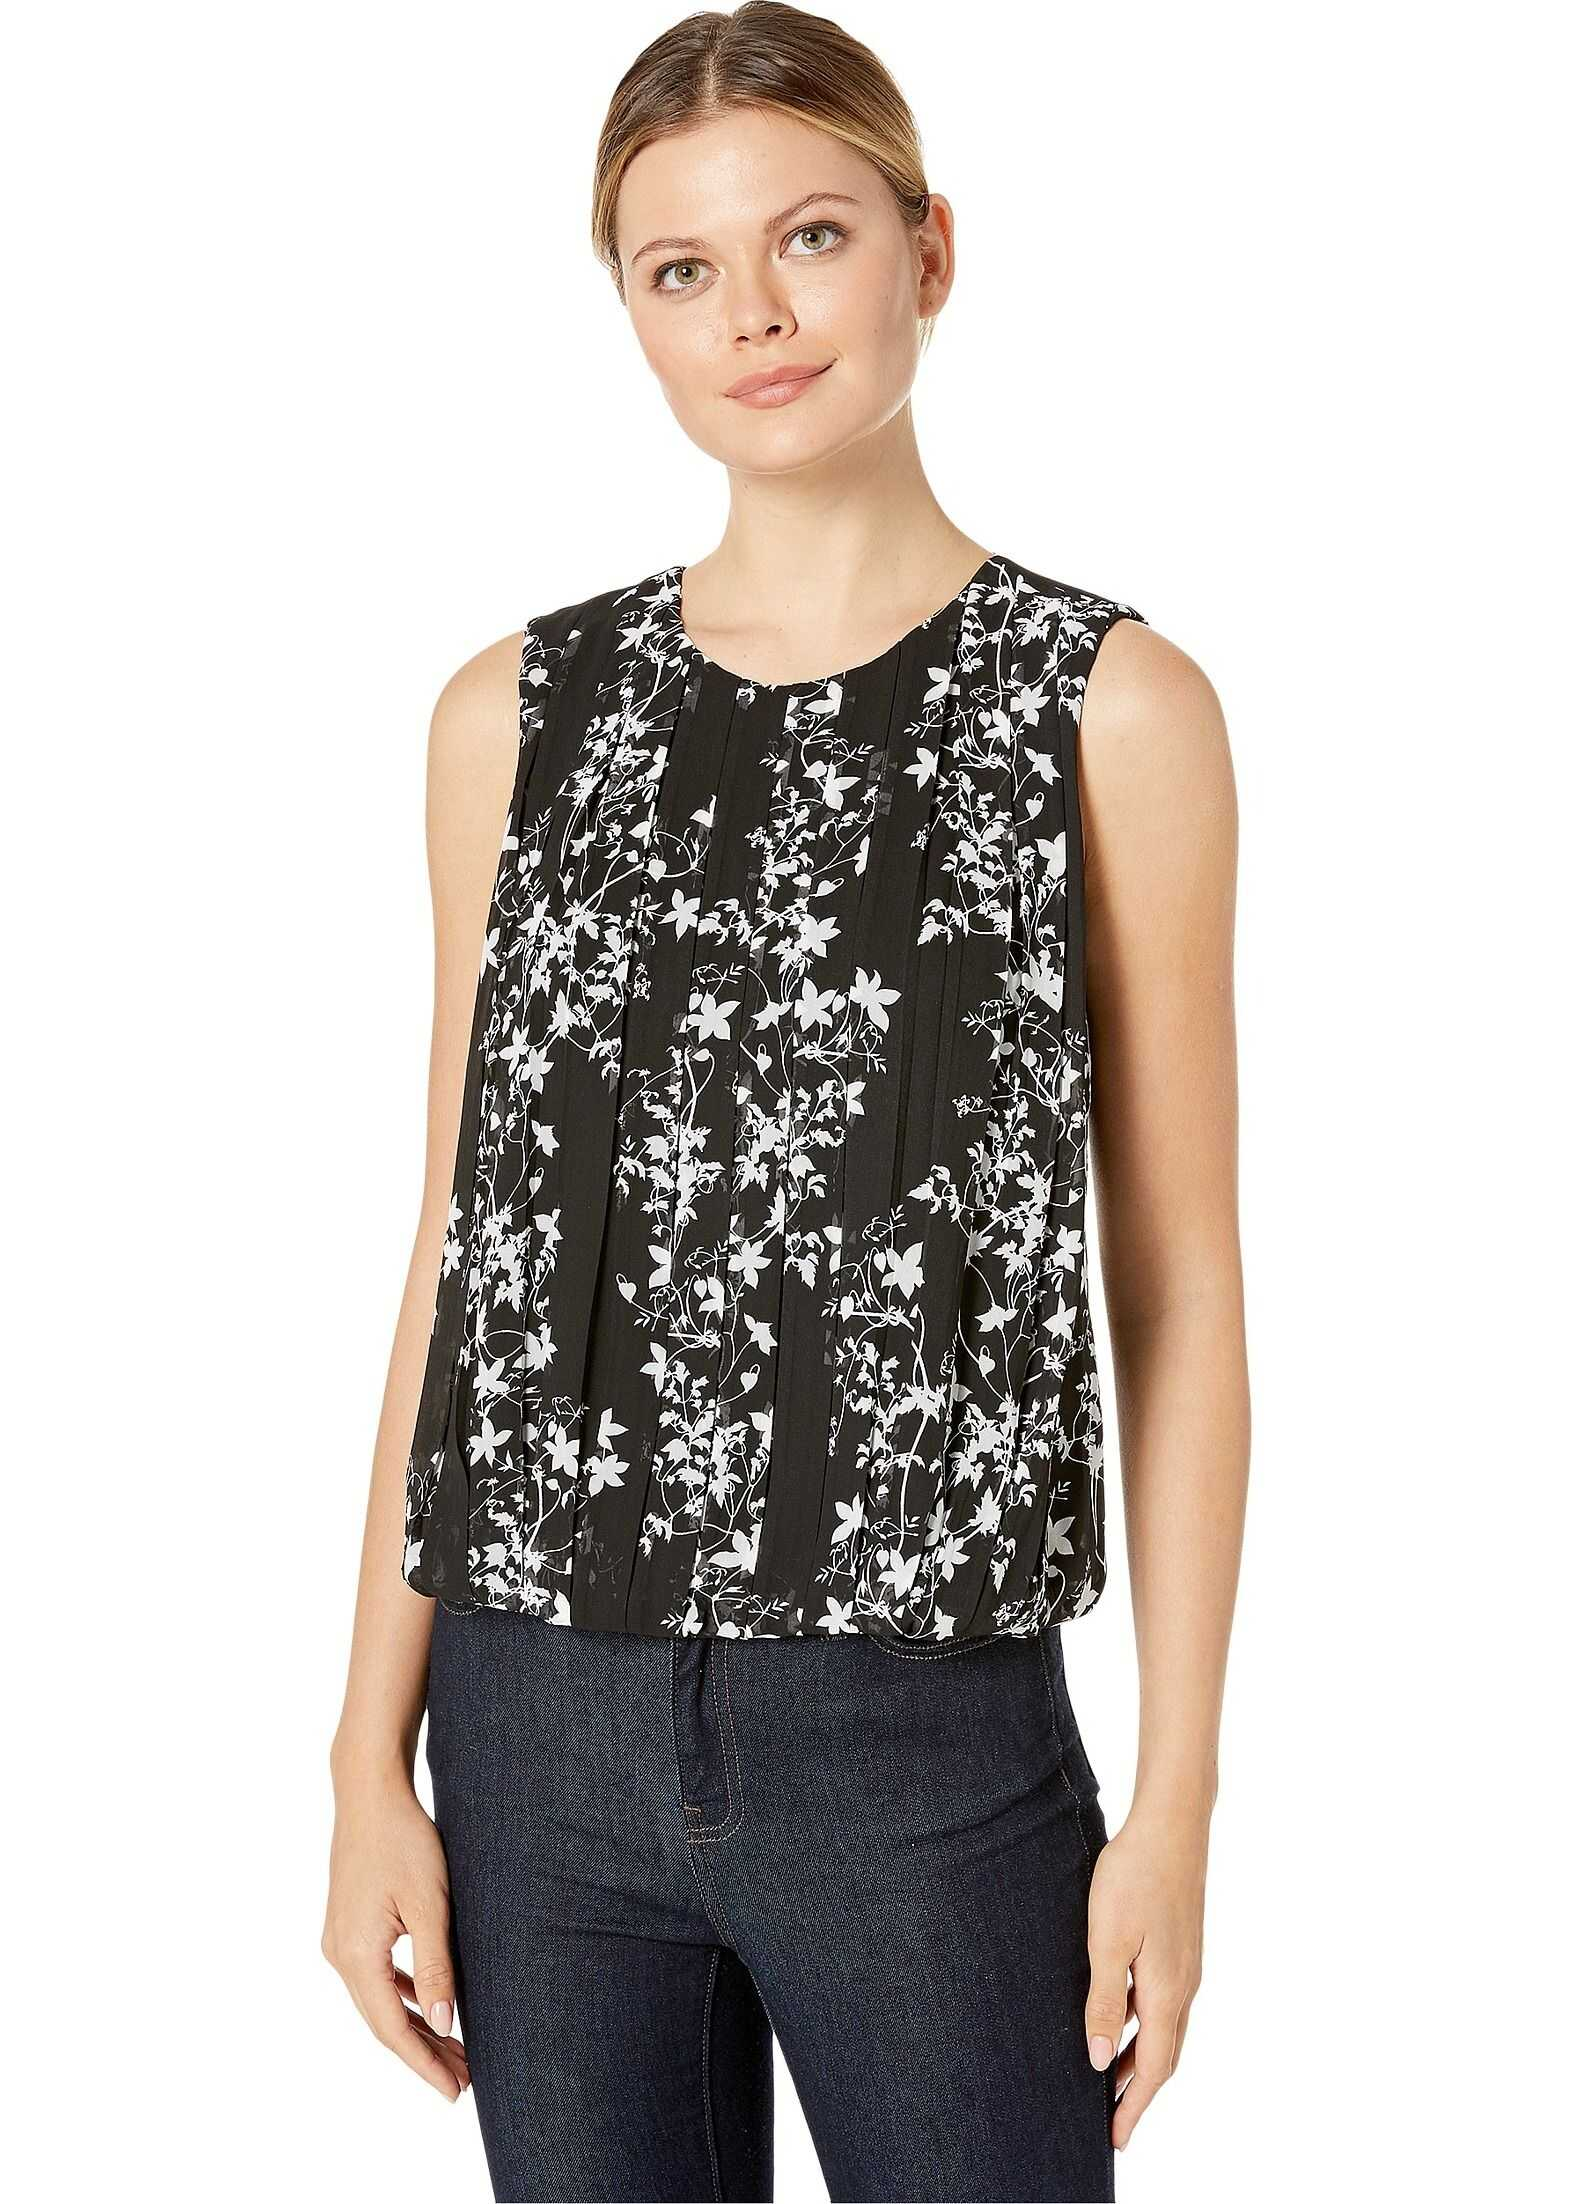 Calvin Klein Pleated Bubble Top Black/Cream